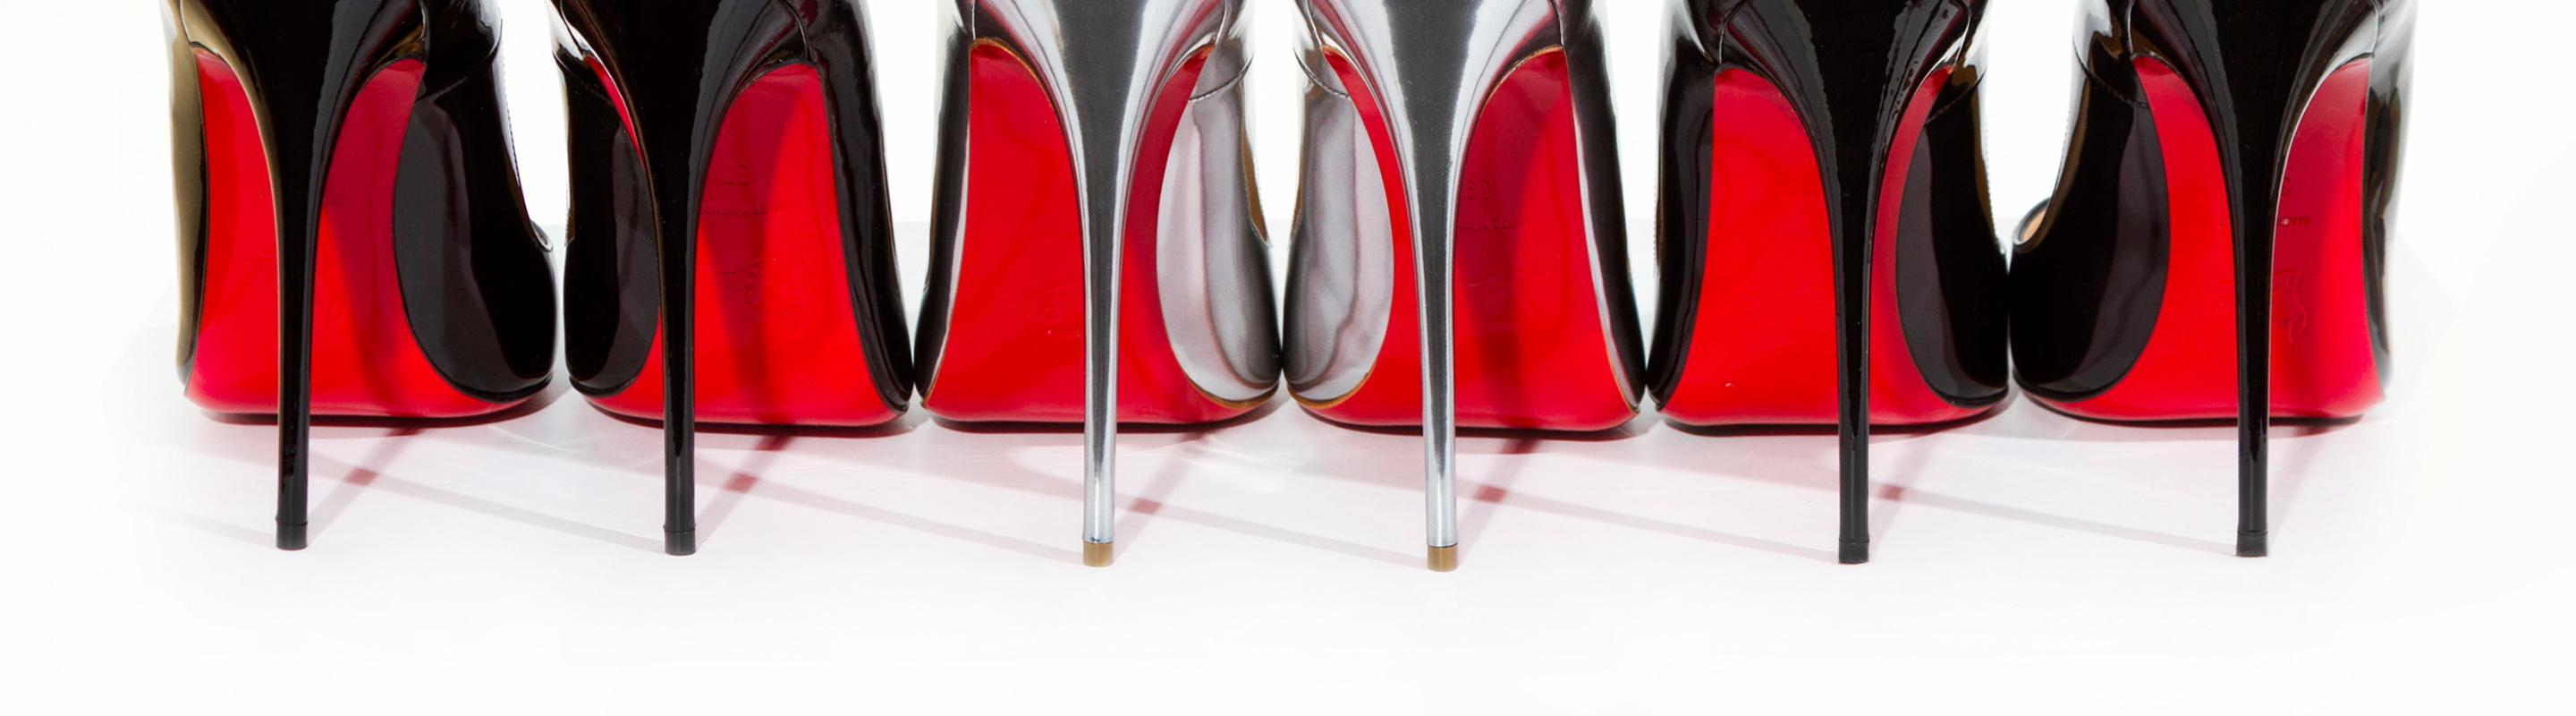 christian louboutin sales